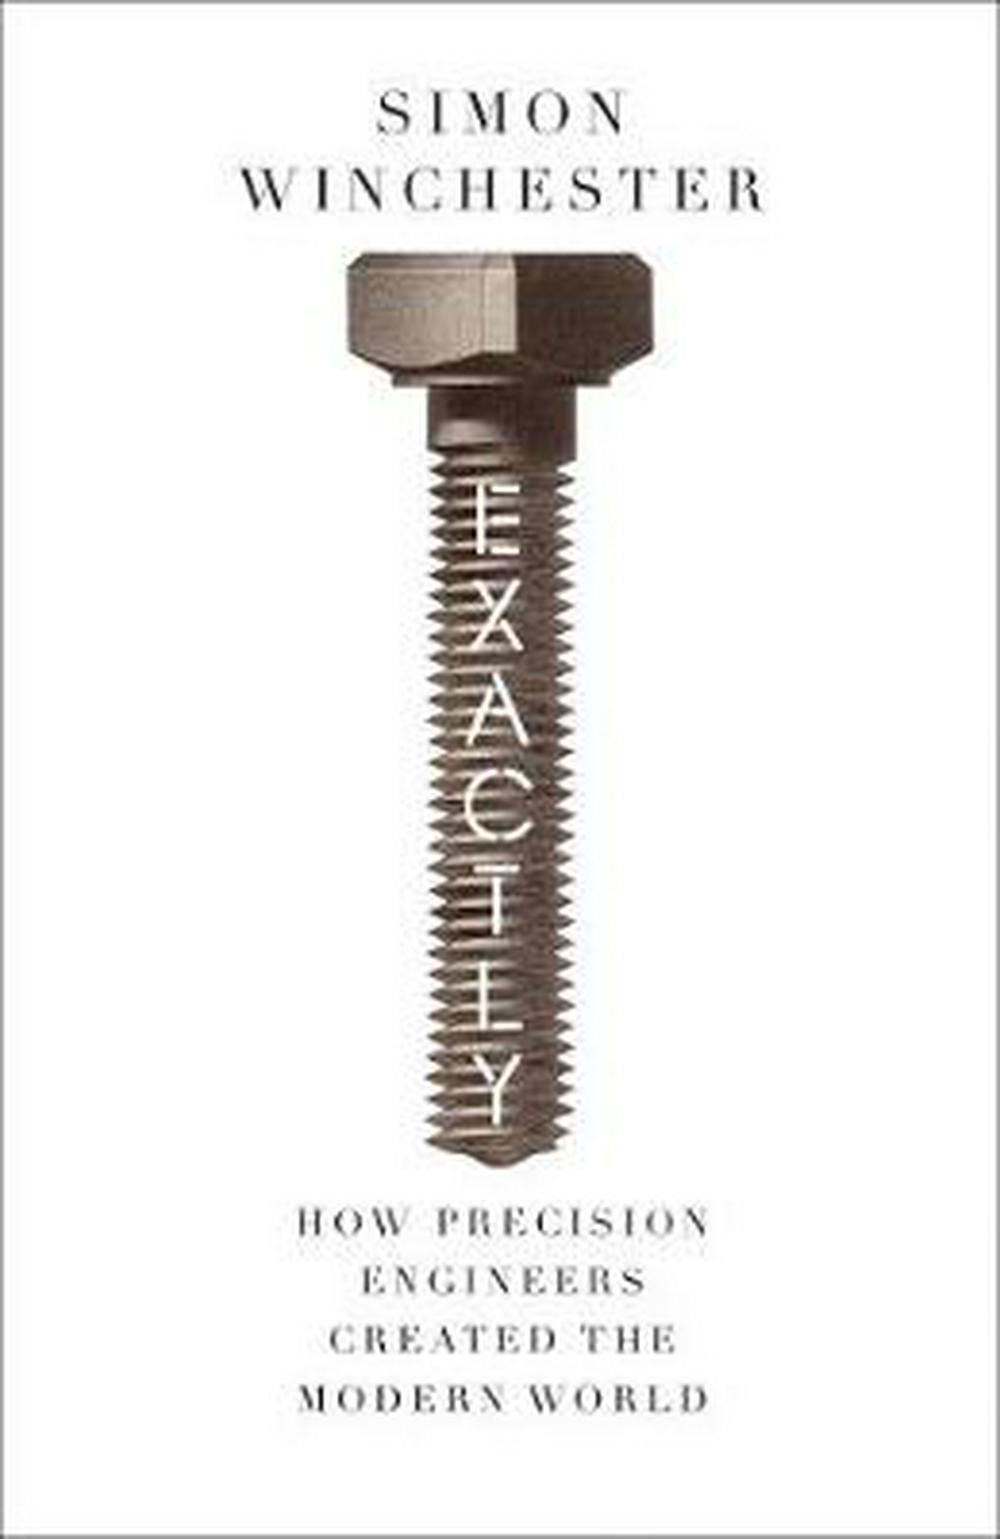 Exactly! A Brief History of Precision